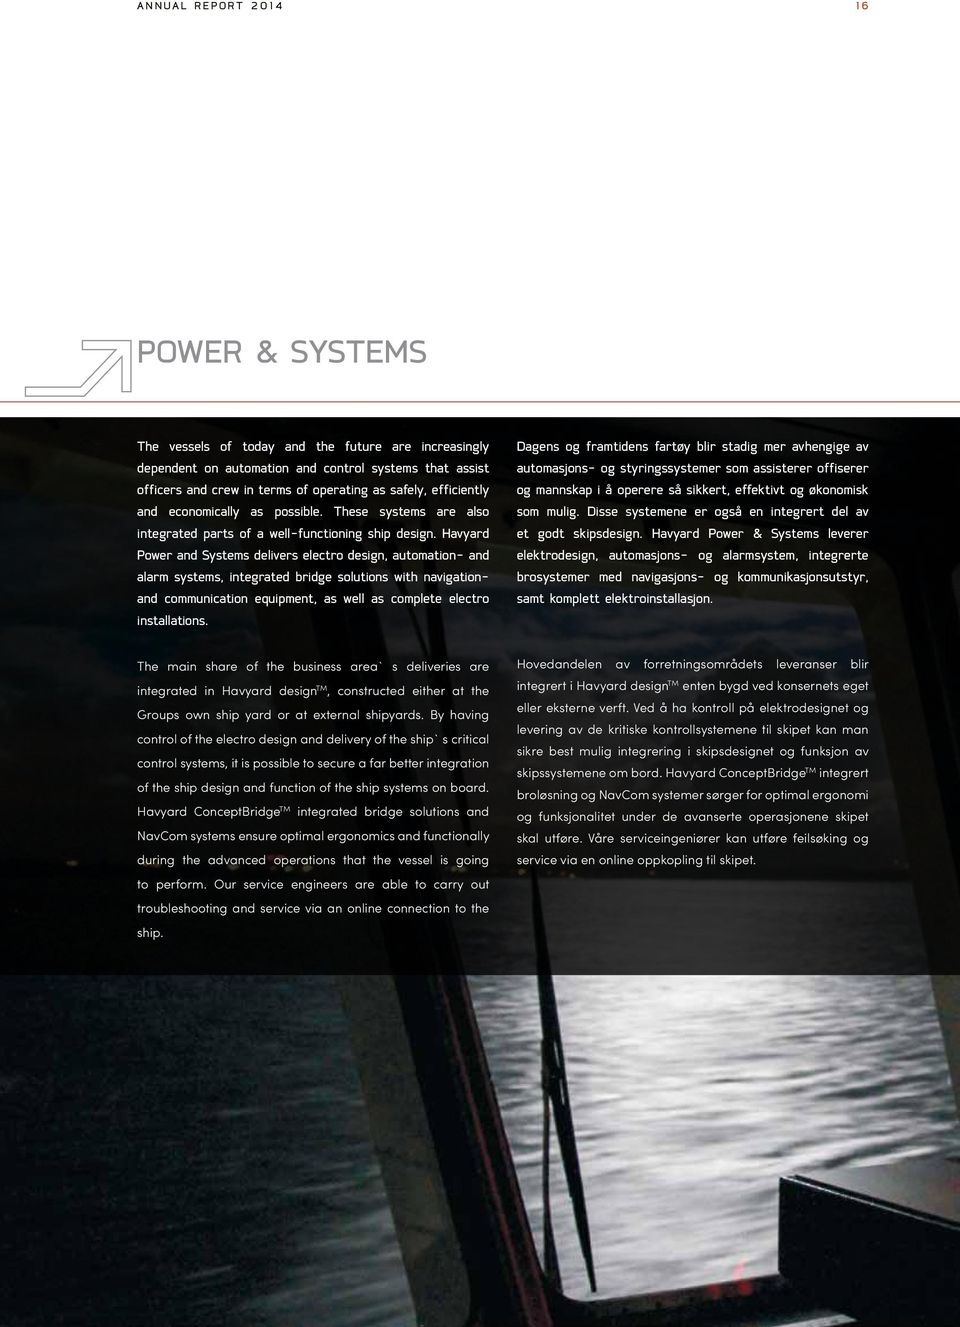 Havyard Power and Systems delivers electro design, automation- and alarm systems, integrated bridge solutions with navigationand communication equipment, as well as complete electro installations.